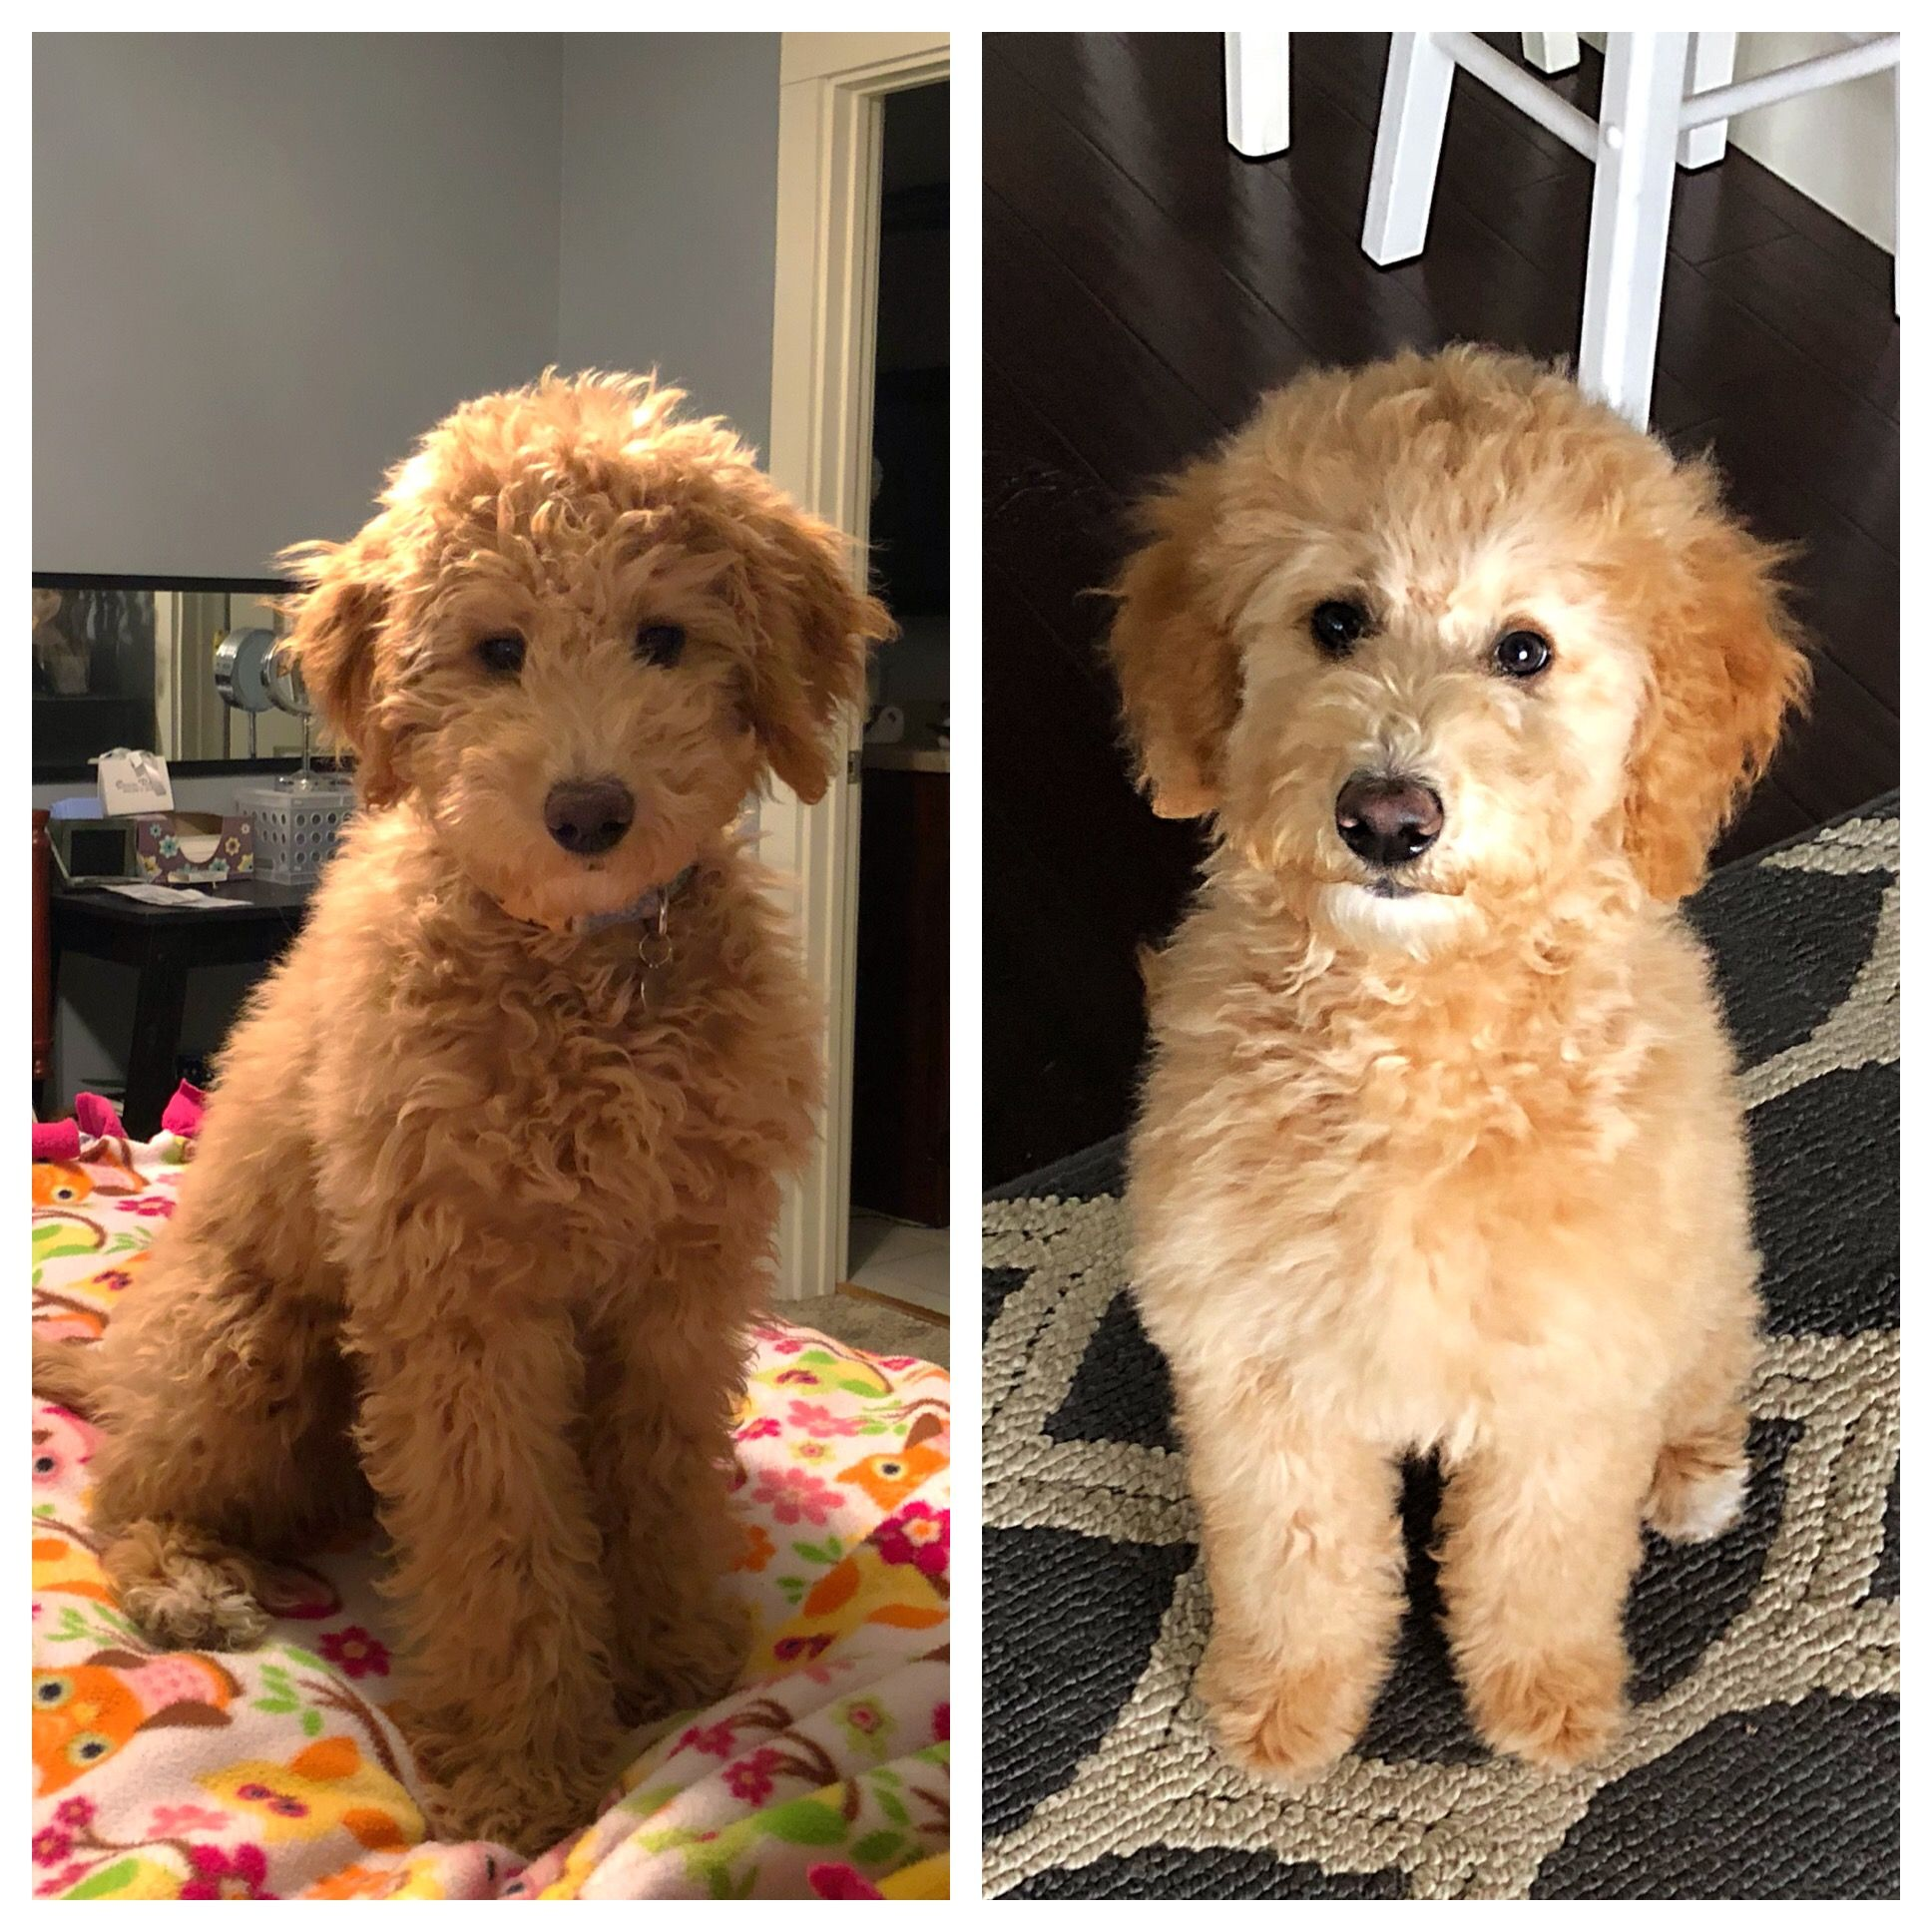 15 Week Old Goldendoodle Puppy First Time Getting Groomed With